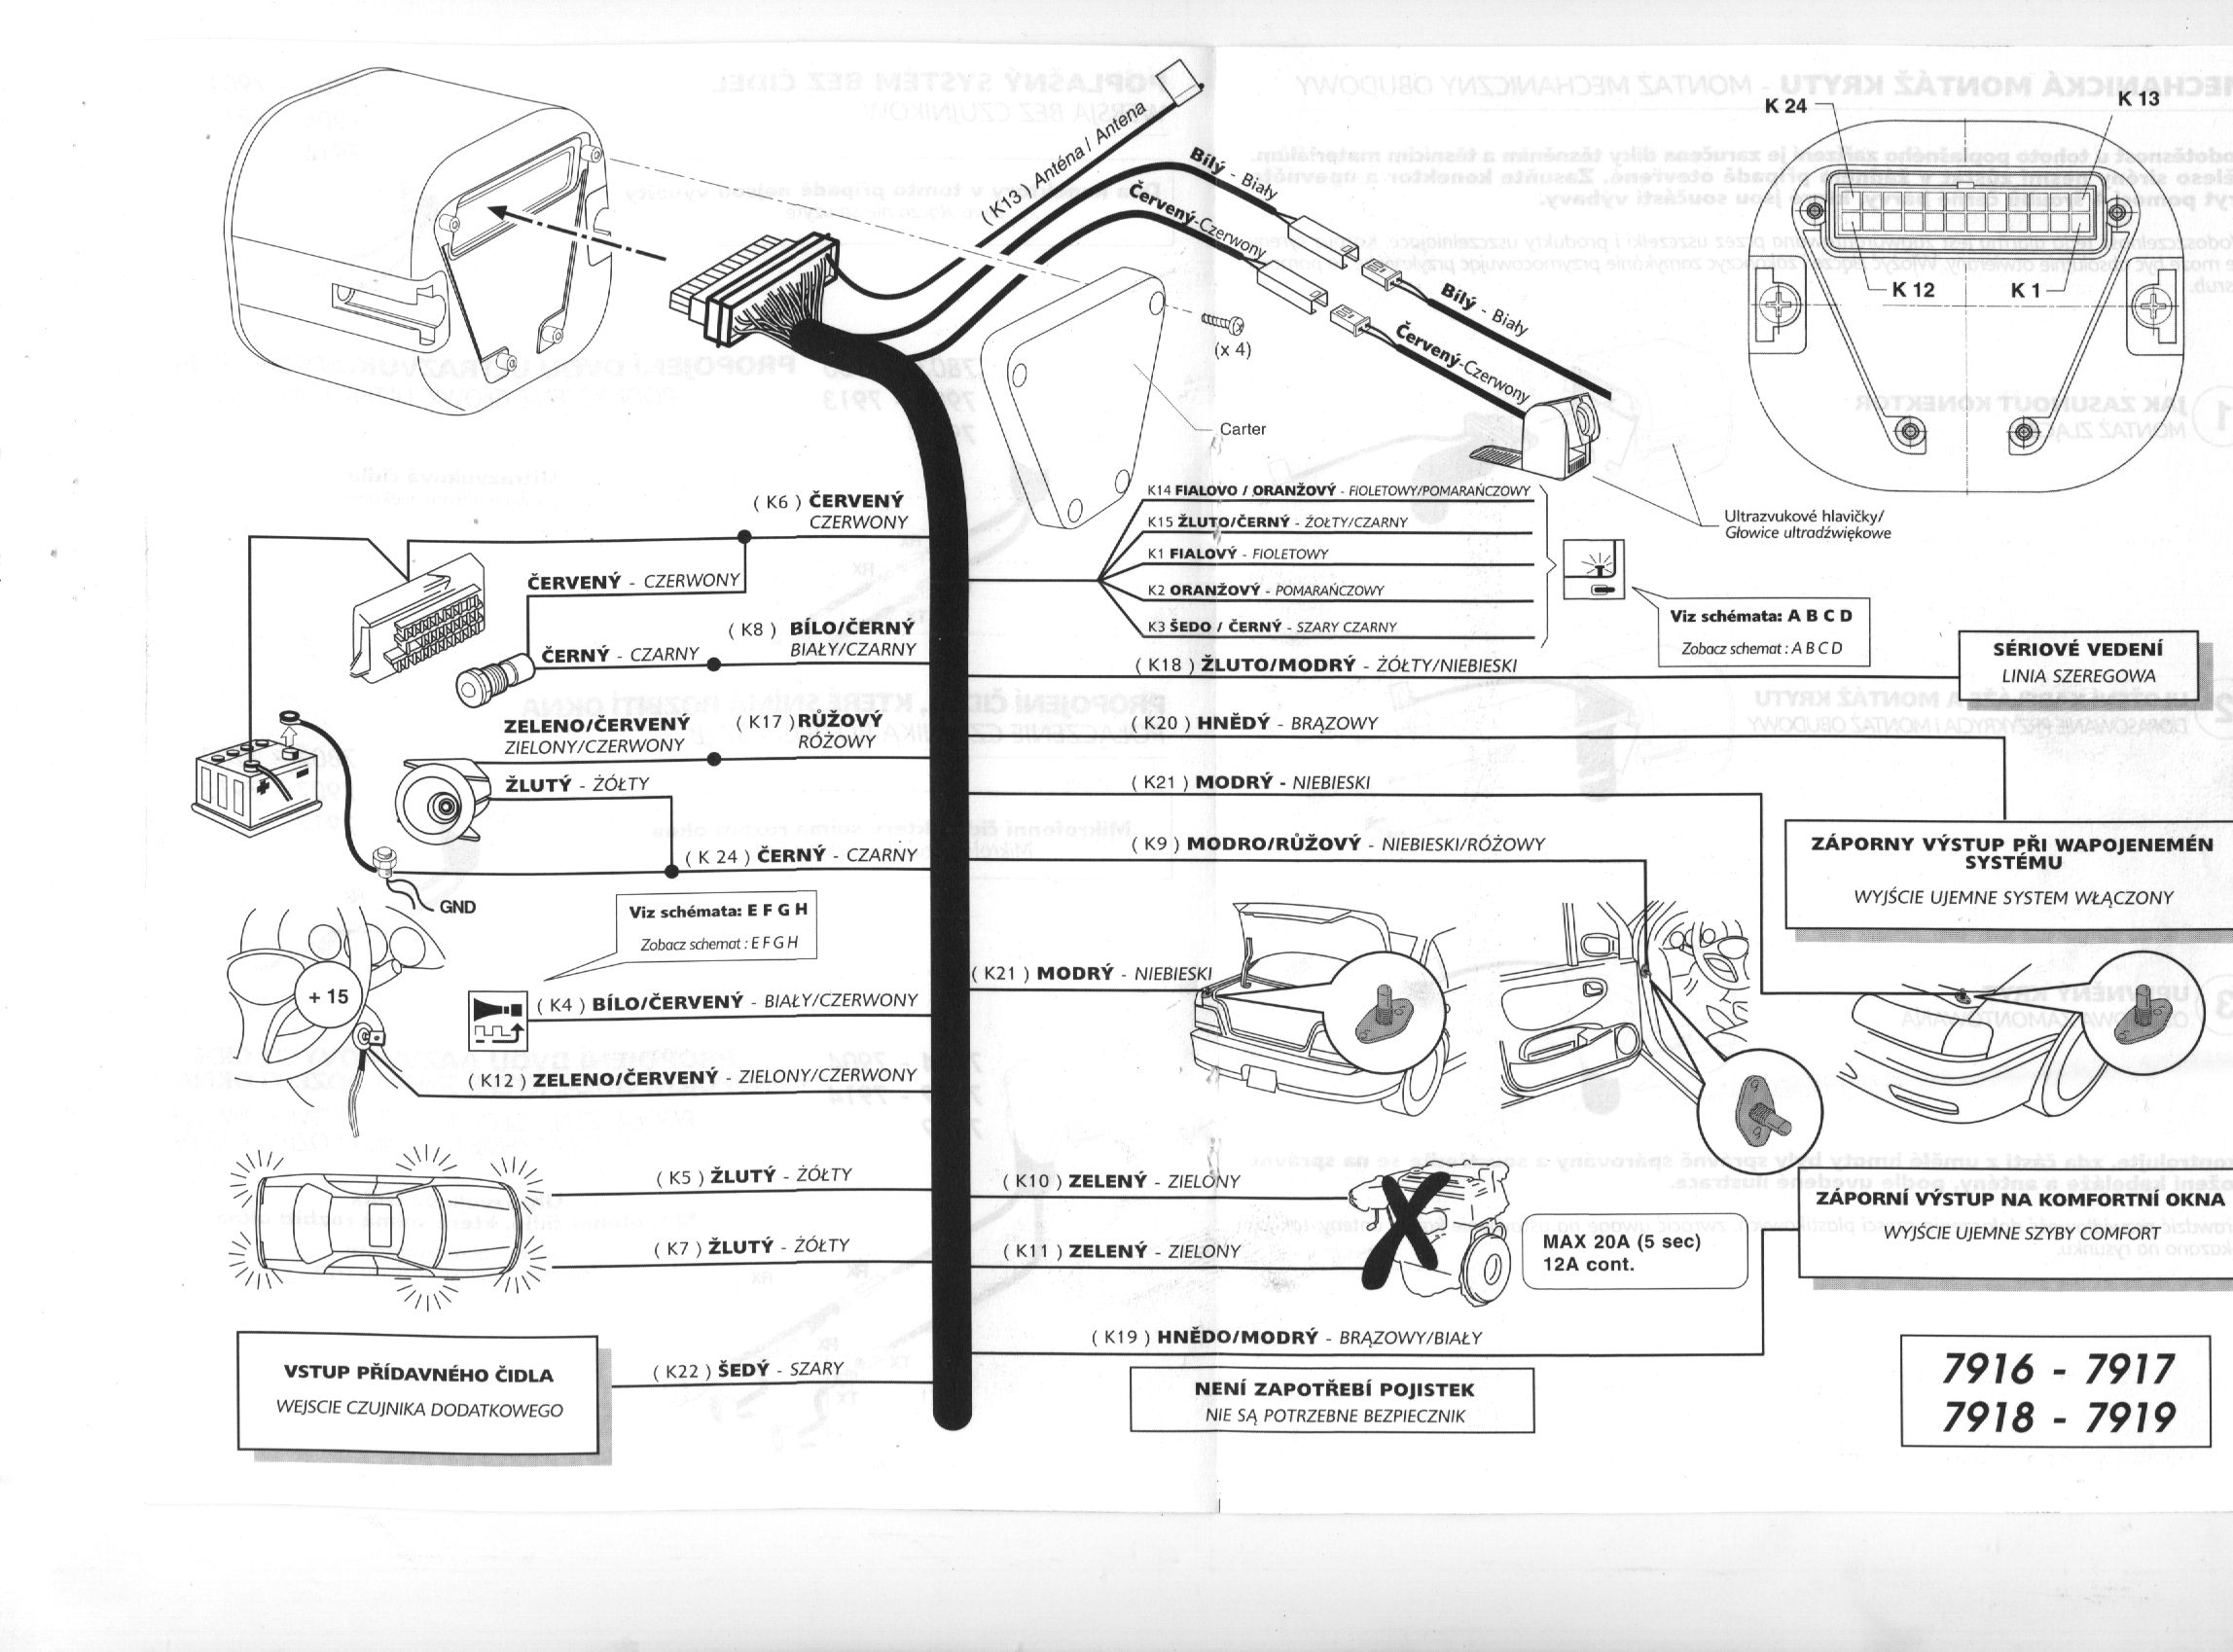 Basic Car Alarm Wiring Diagrams Schematics Viper 5002 Diagram Imetrik Home